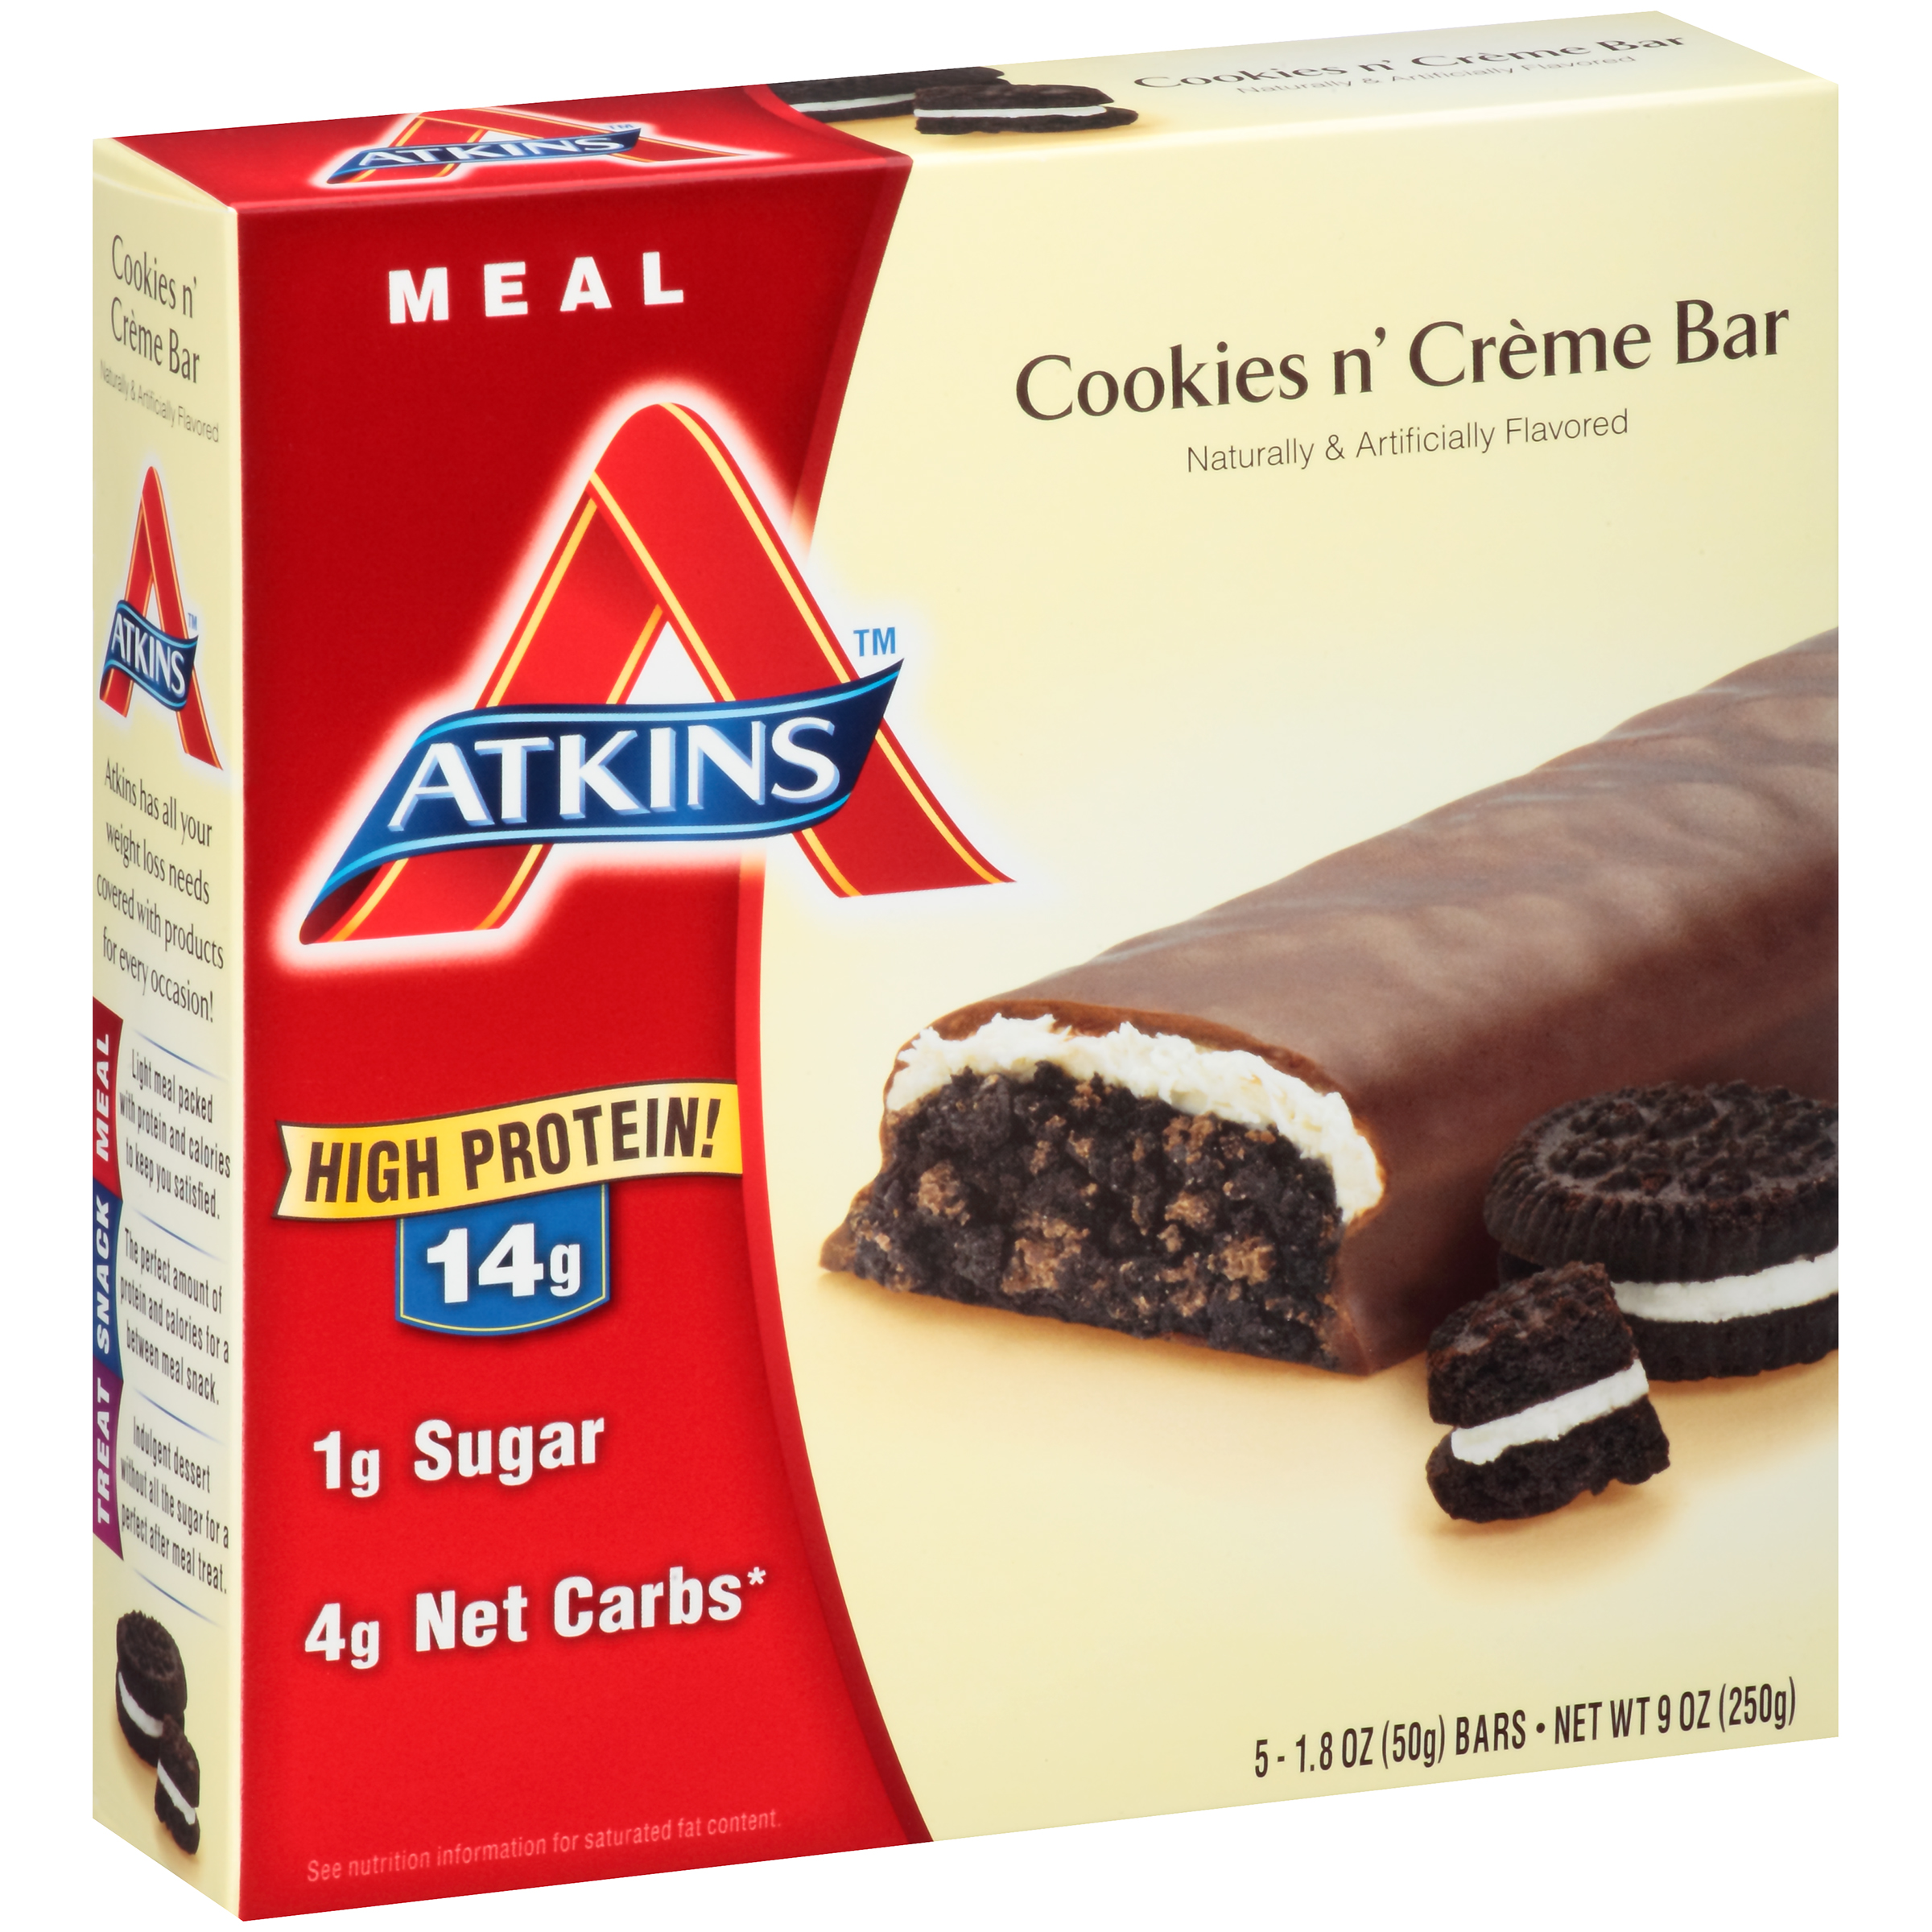 Atkins Meal Cookies N Cr��me Bars 5-pack